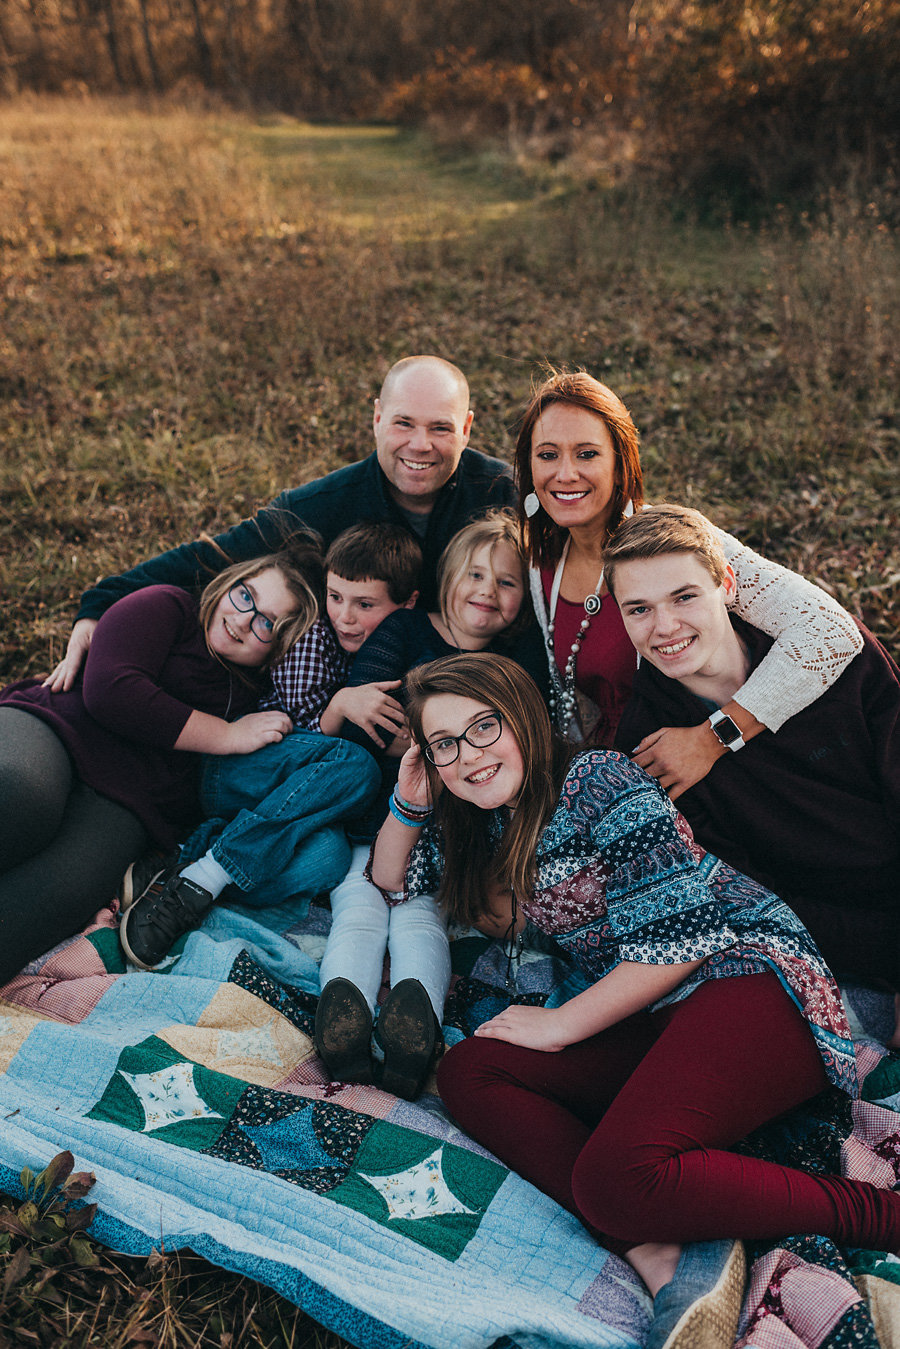 Blacksburn_Family_Fall_Session